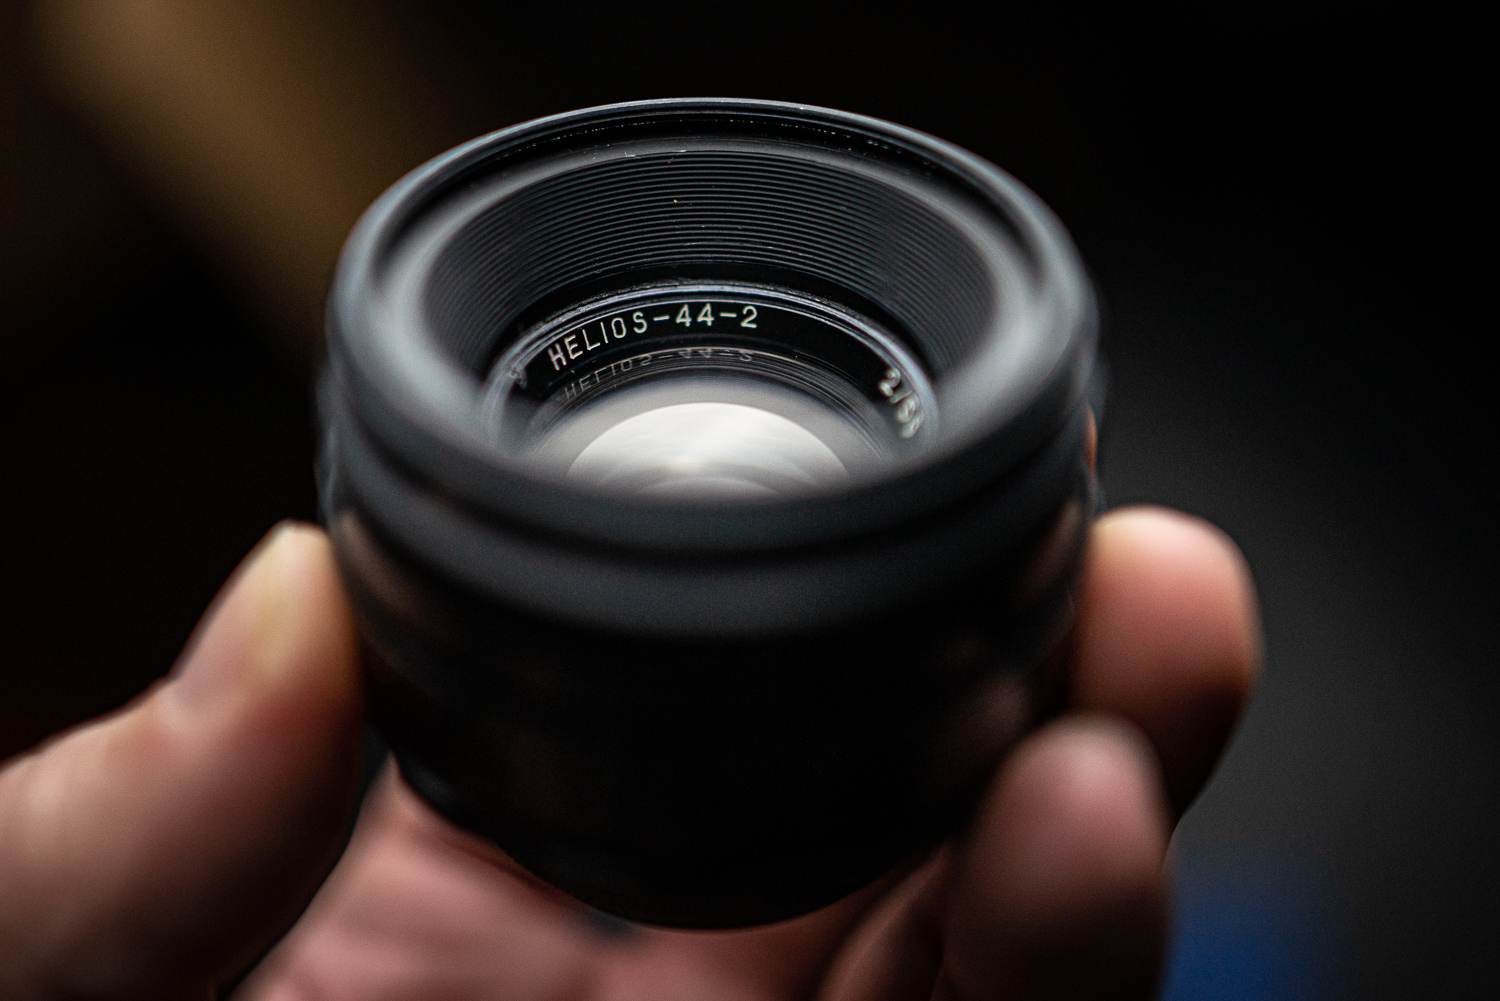 The Helios 44-2 has lens flaws which are prized